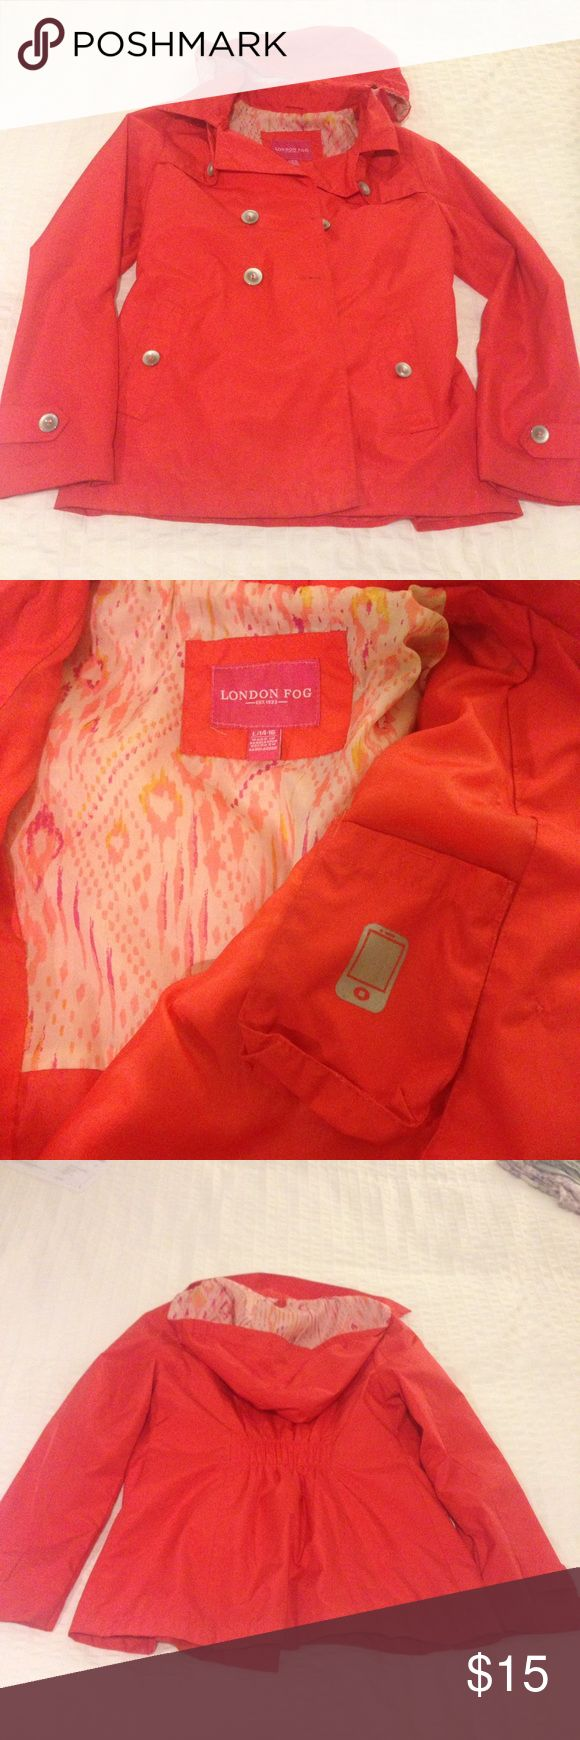 London Fog Rain Jacket Coral red in color. Size Youth Large but listed as XS since it fits women too! Very cute interior and hood pattern. The hood is removable and there is even a phone/iPod pocket inside. Not interested in trading but happy to answer questions! London Fog Jackets & Coats